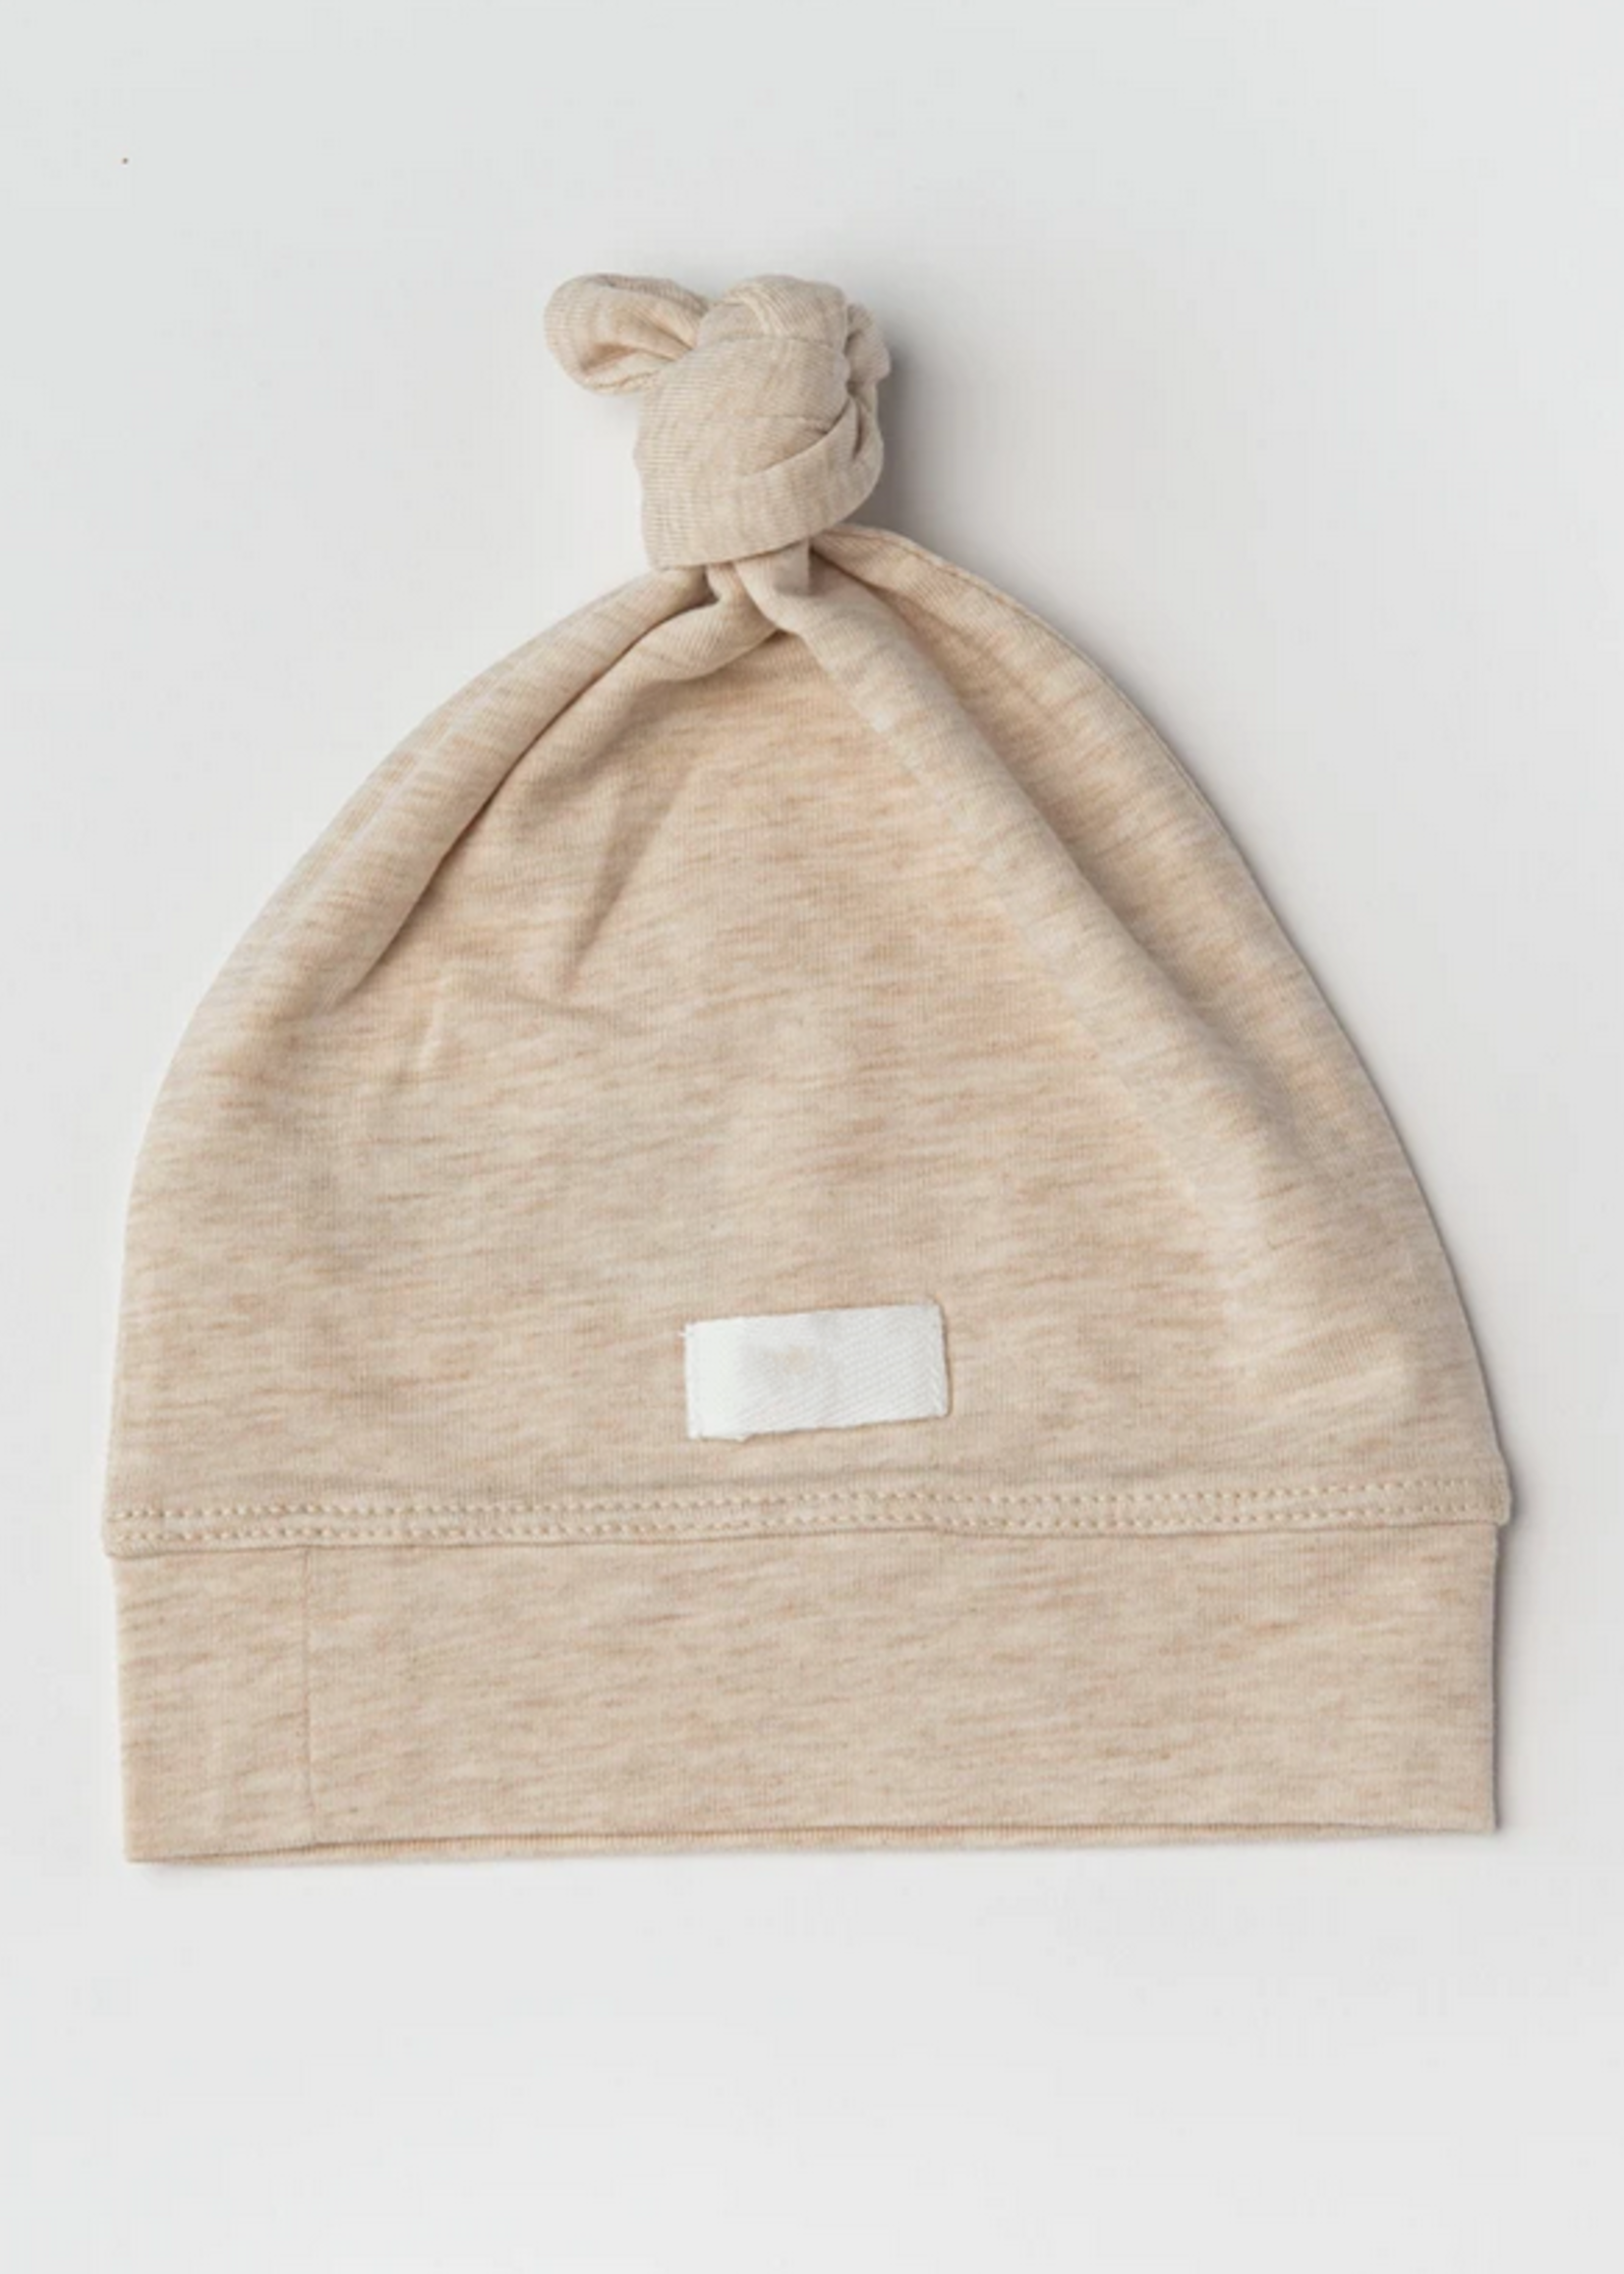 Elitaire Petite Top Knot Beanie in Oatmeal